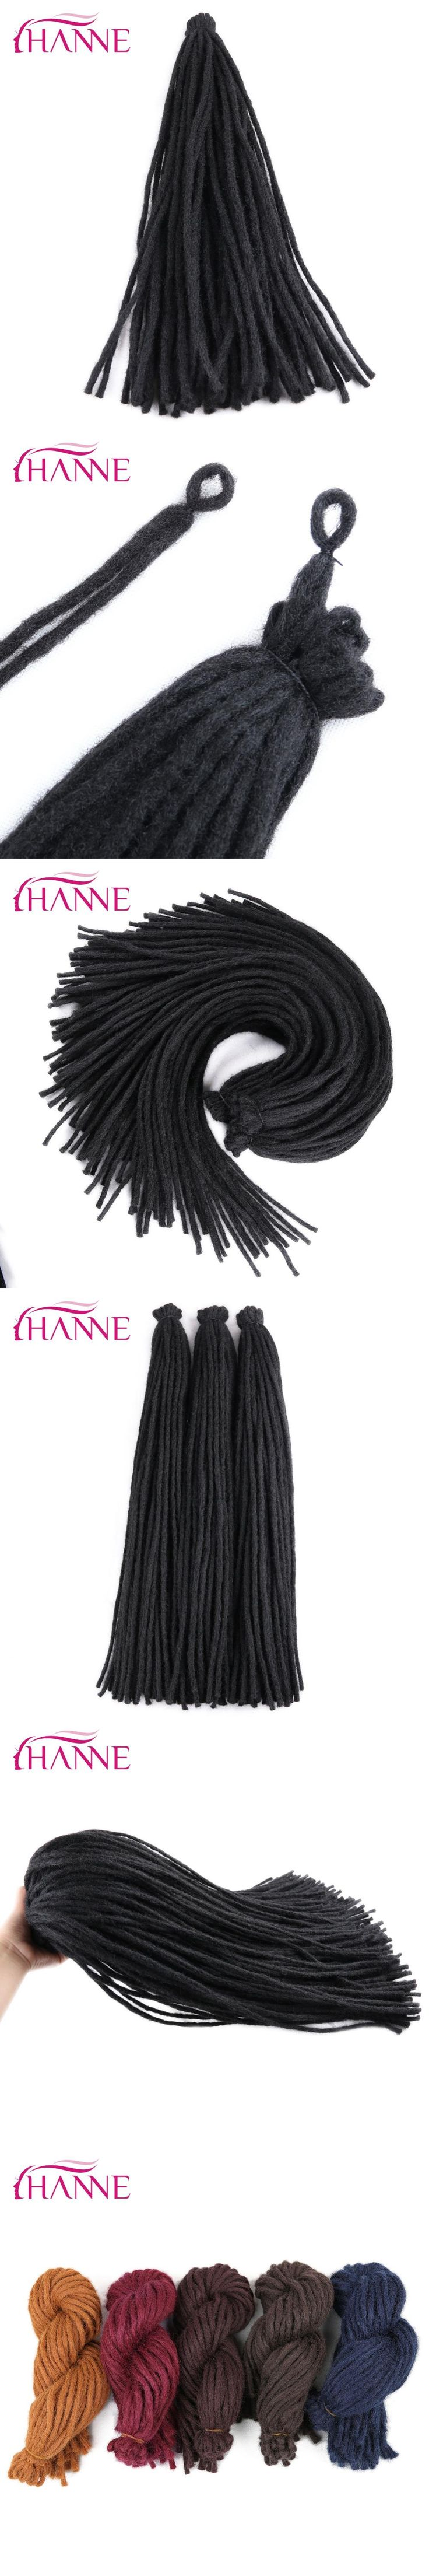 "HANNE 22"" Crochet Braids 5 colors available Dreadlocks High Temperature Synthetic Hair Extensions For Men Or Black Women 1pack"